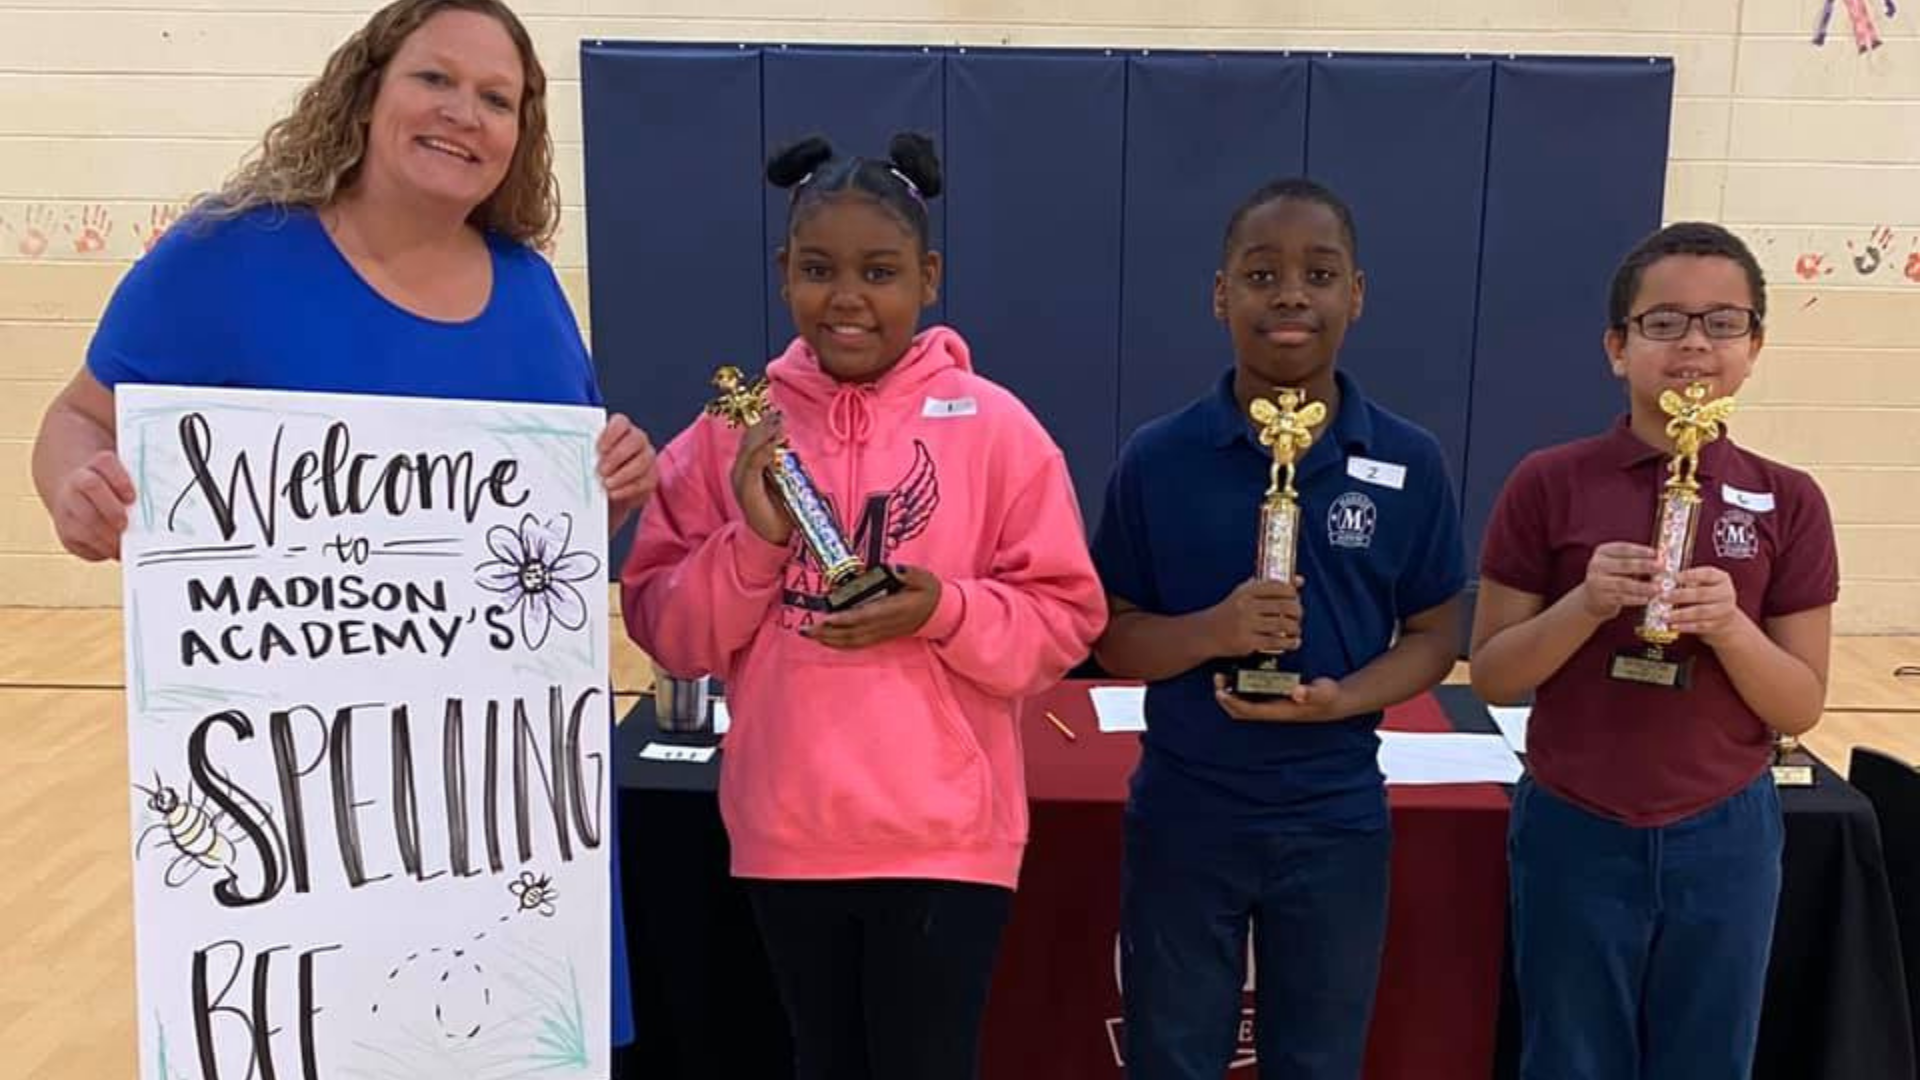 A white teacher stands holding a sign that reads welcome the Madison Academy's Spelling Bee